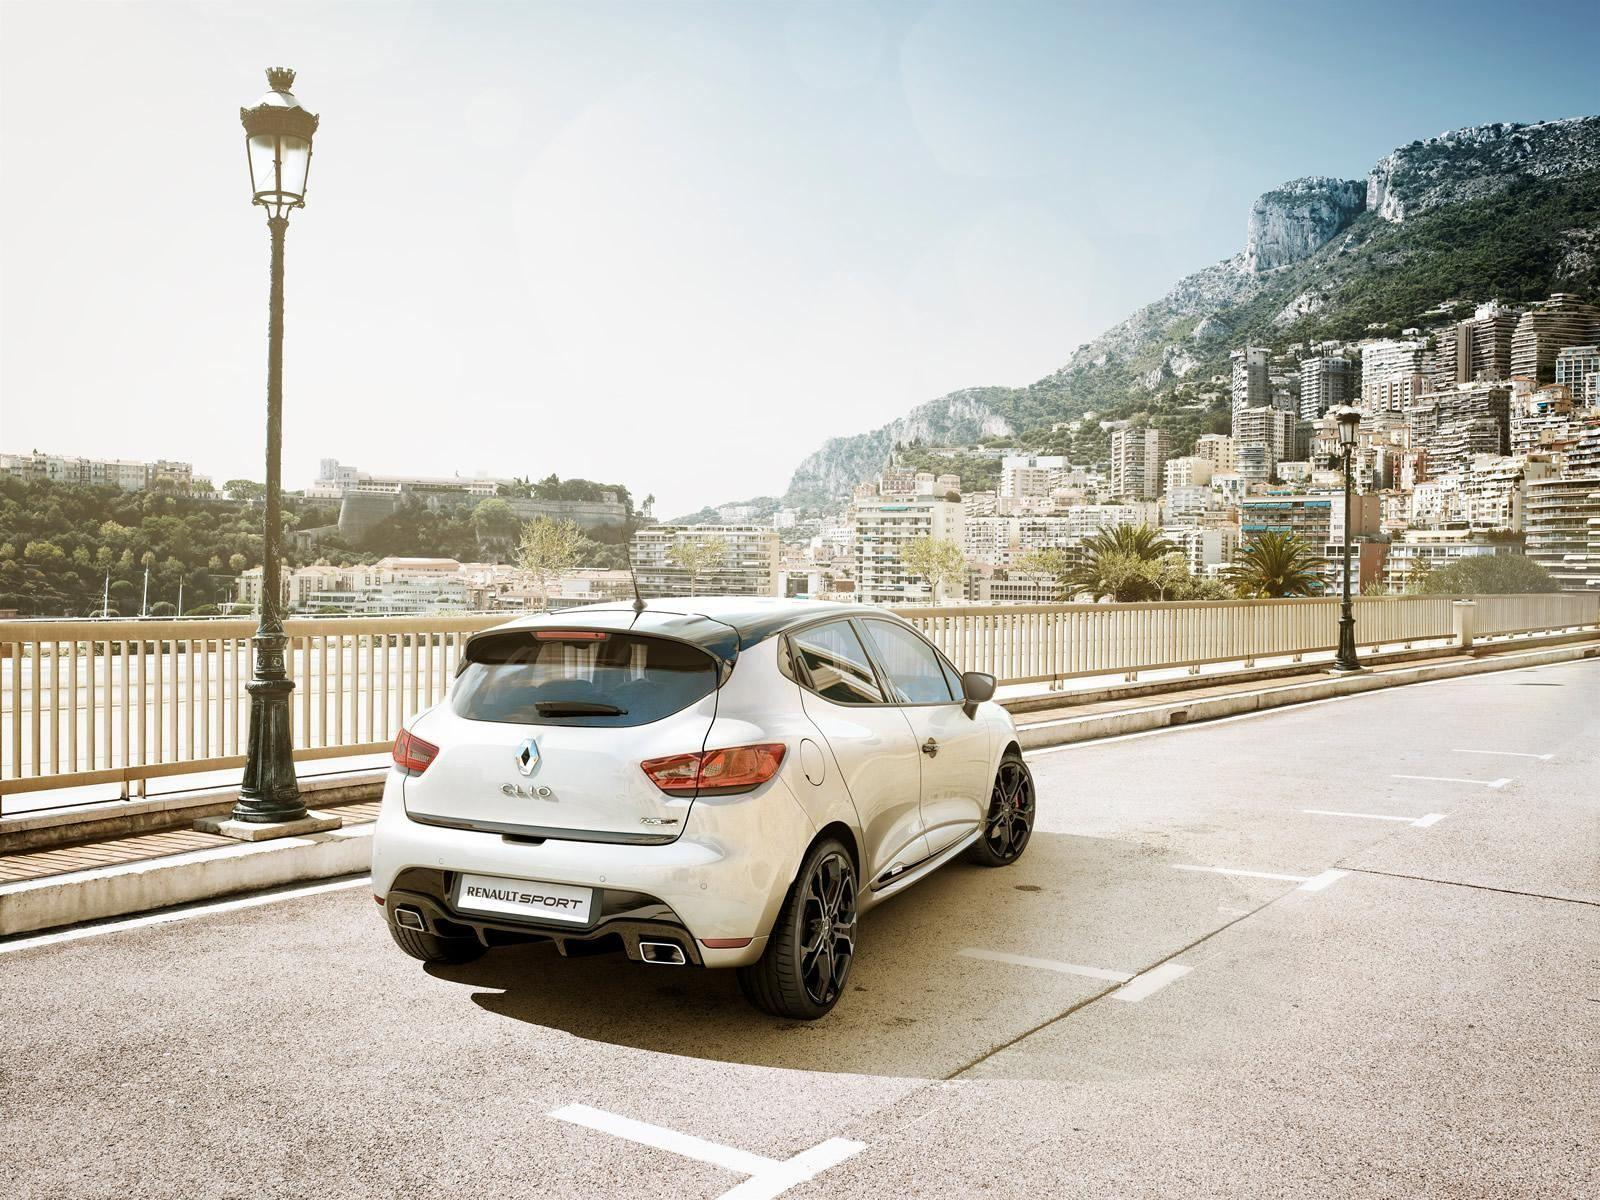 Renault Clio RS Monaco GP 2014 photo 108696 pictures at high